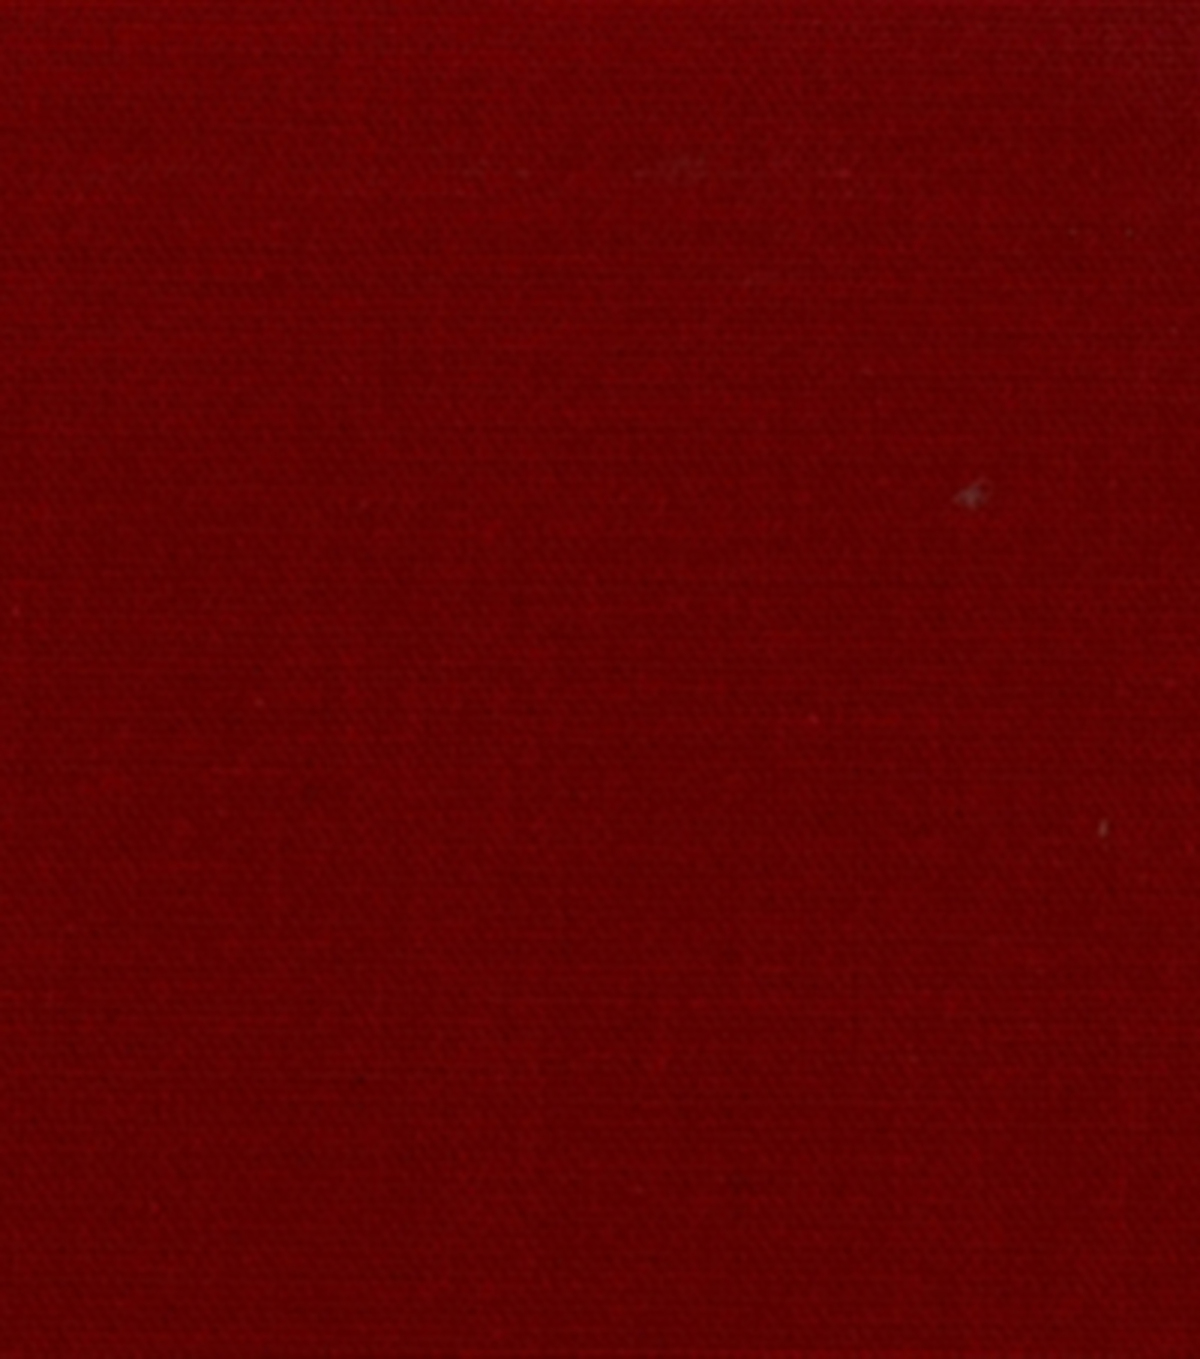 Home Decor 8\u0022x8\u0022 Fabric Swatch-Covington Spinnaker 44 Cardinal